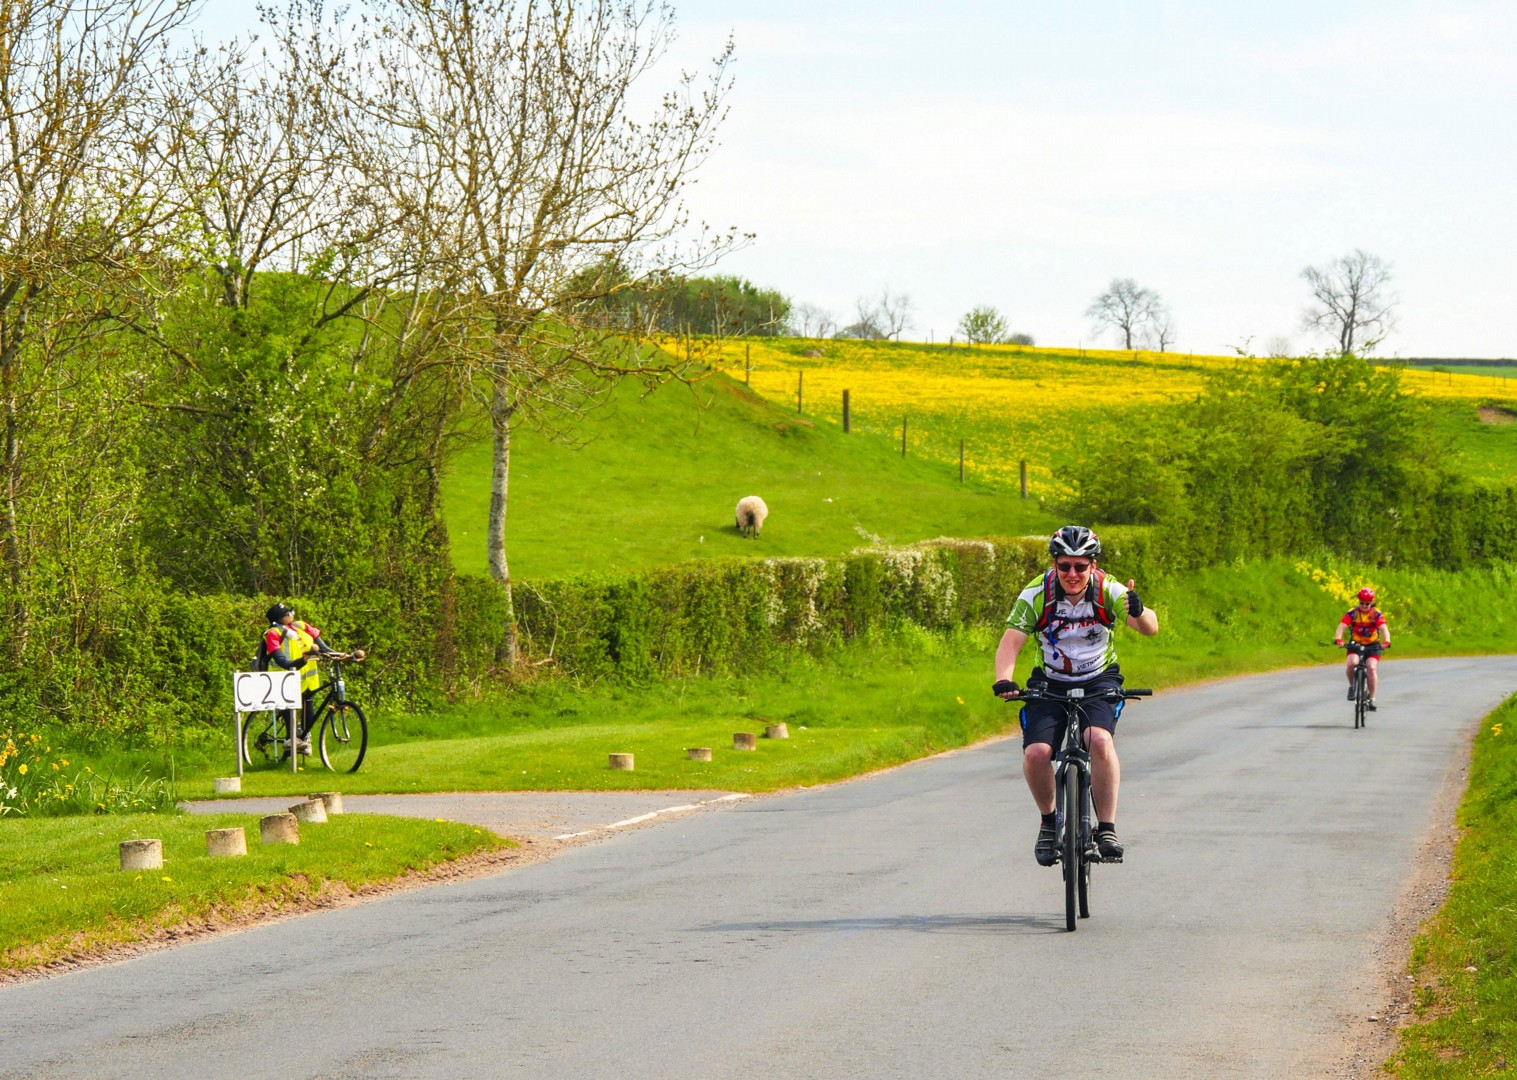 british-fields-rural-cyclepaths-bike-leisure-self-guided-green.jpg - UK - C2C - Coast to Coast 3 Days Cycling - Self-Guided Leisure Cycling Holiday - Leisure Cycling